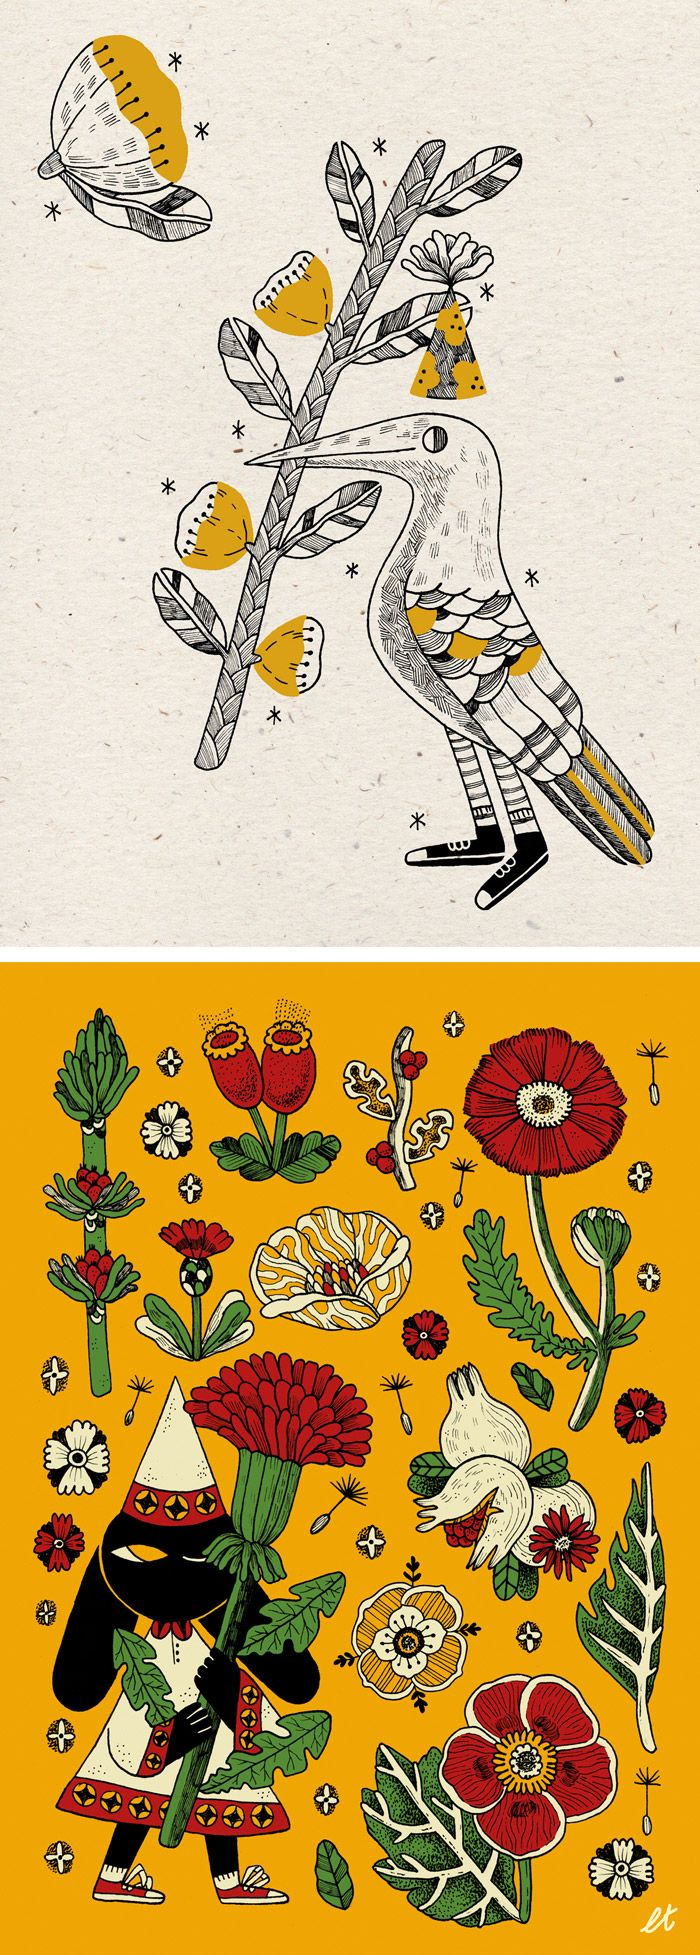 Folk art illustrations by Lia Tuia